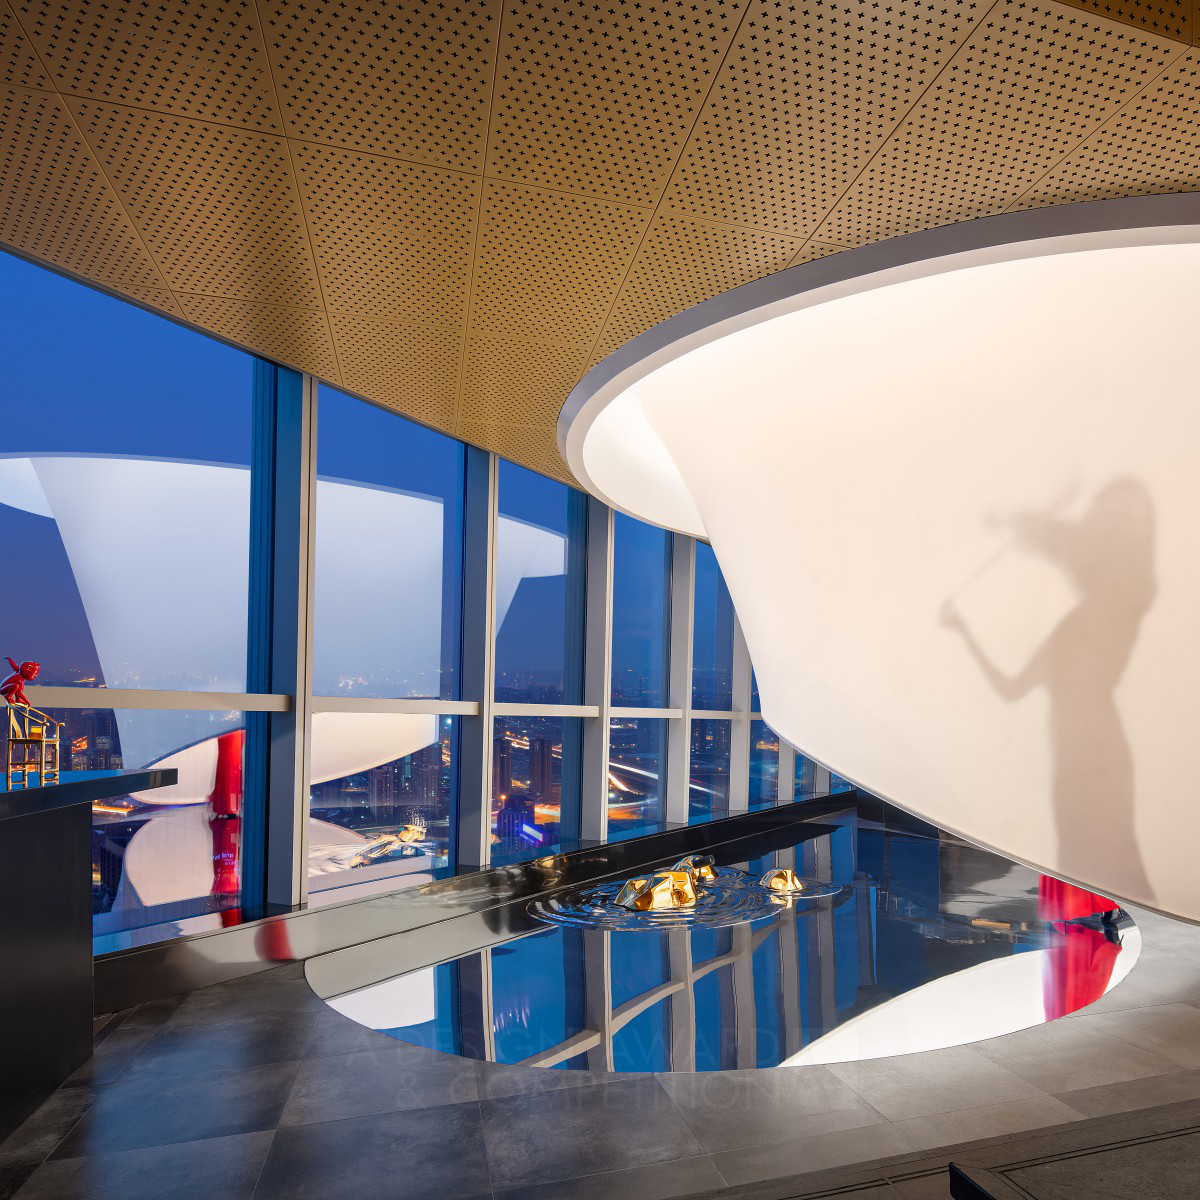 The Top of Cloud Restaurant Space